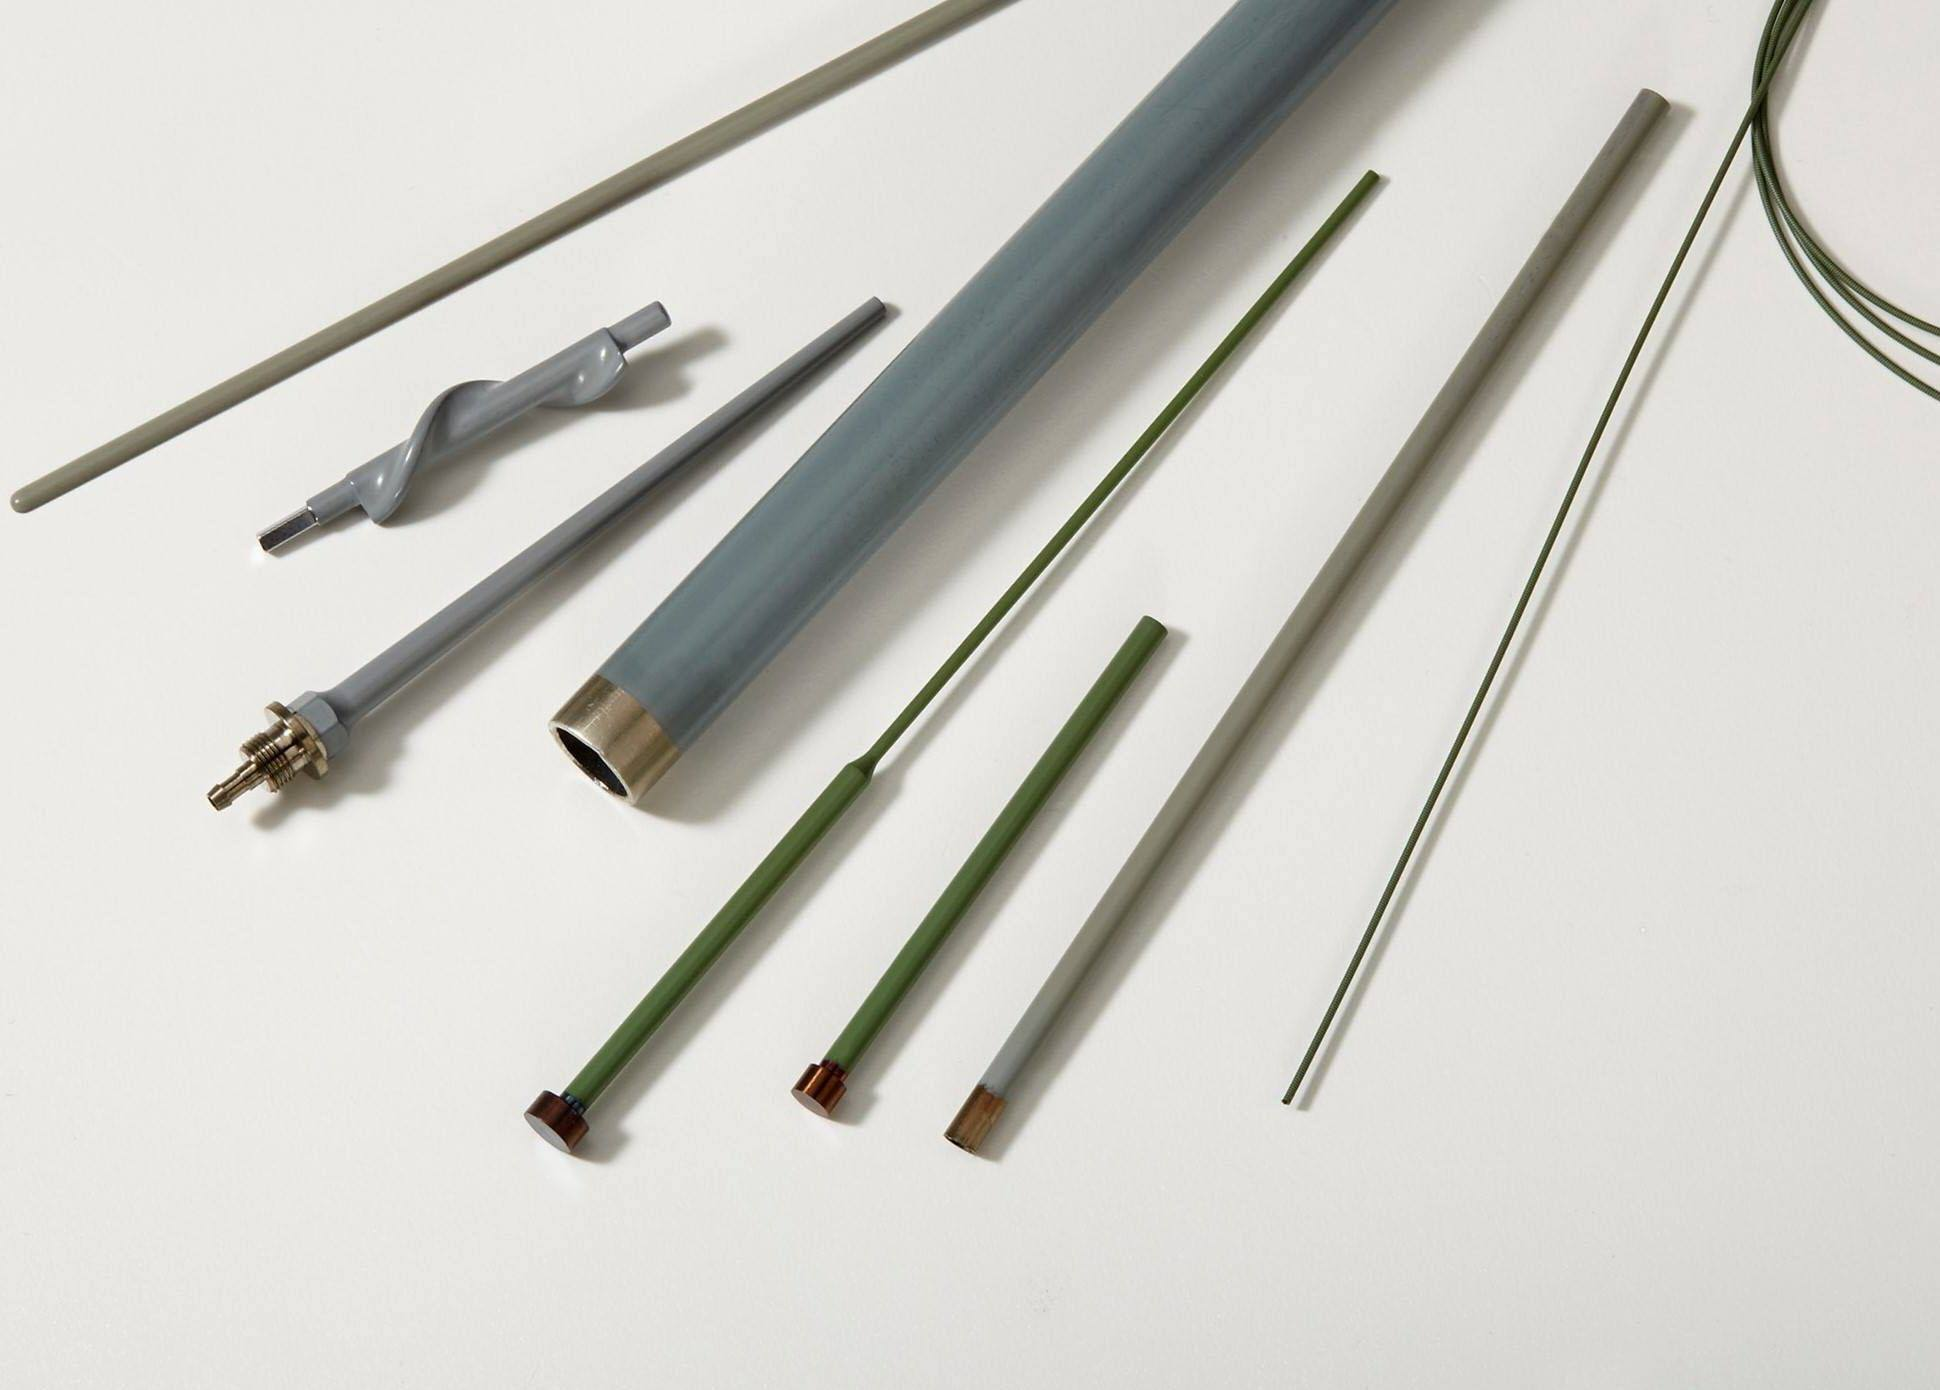 PTFE Coating - Medical Coatings & More - RothGreaves and